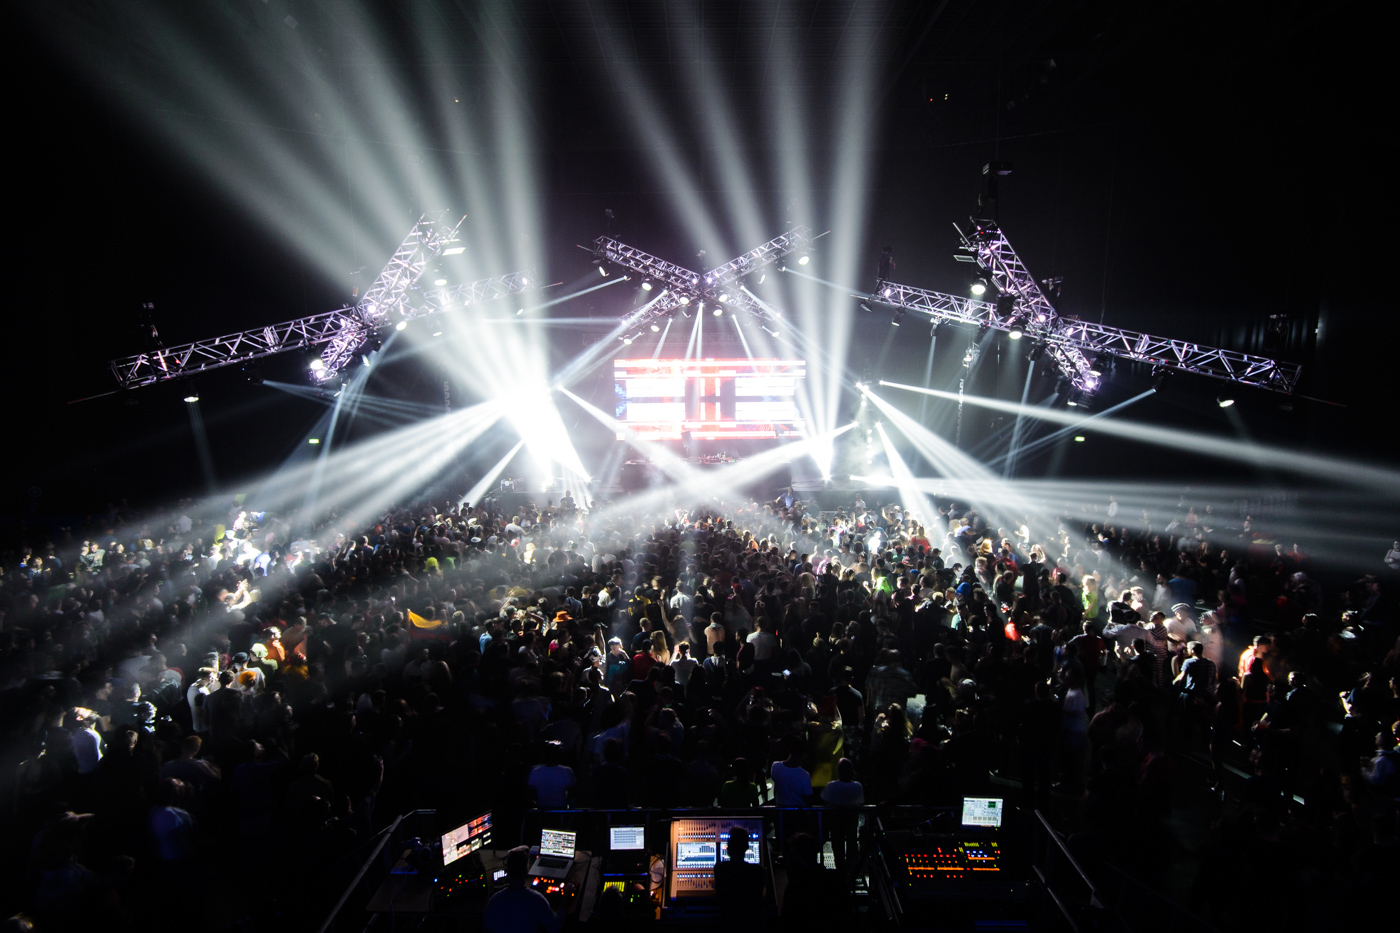 winterparty-at-3arena-dublin-30-10-2016-by-sean-smyth-43-of-53